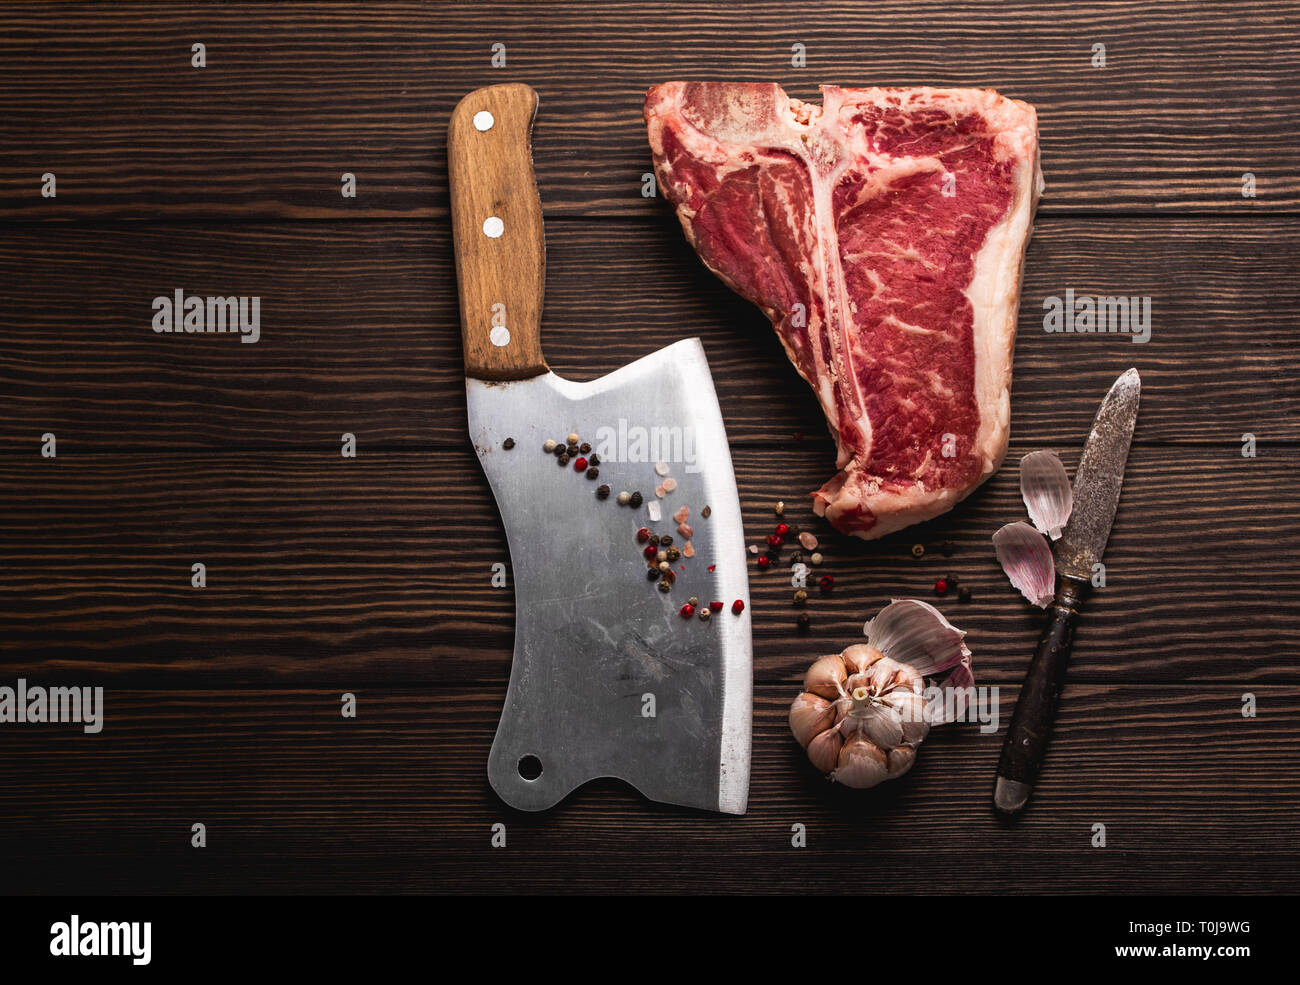 T-bone and meat cleaver - Stock Image